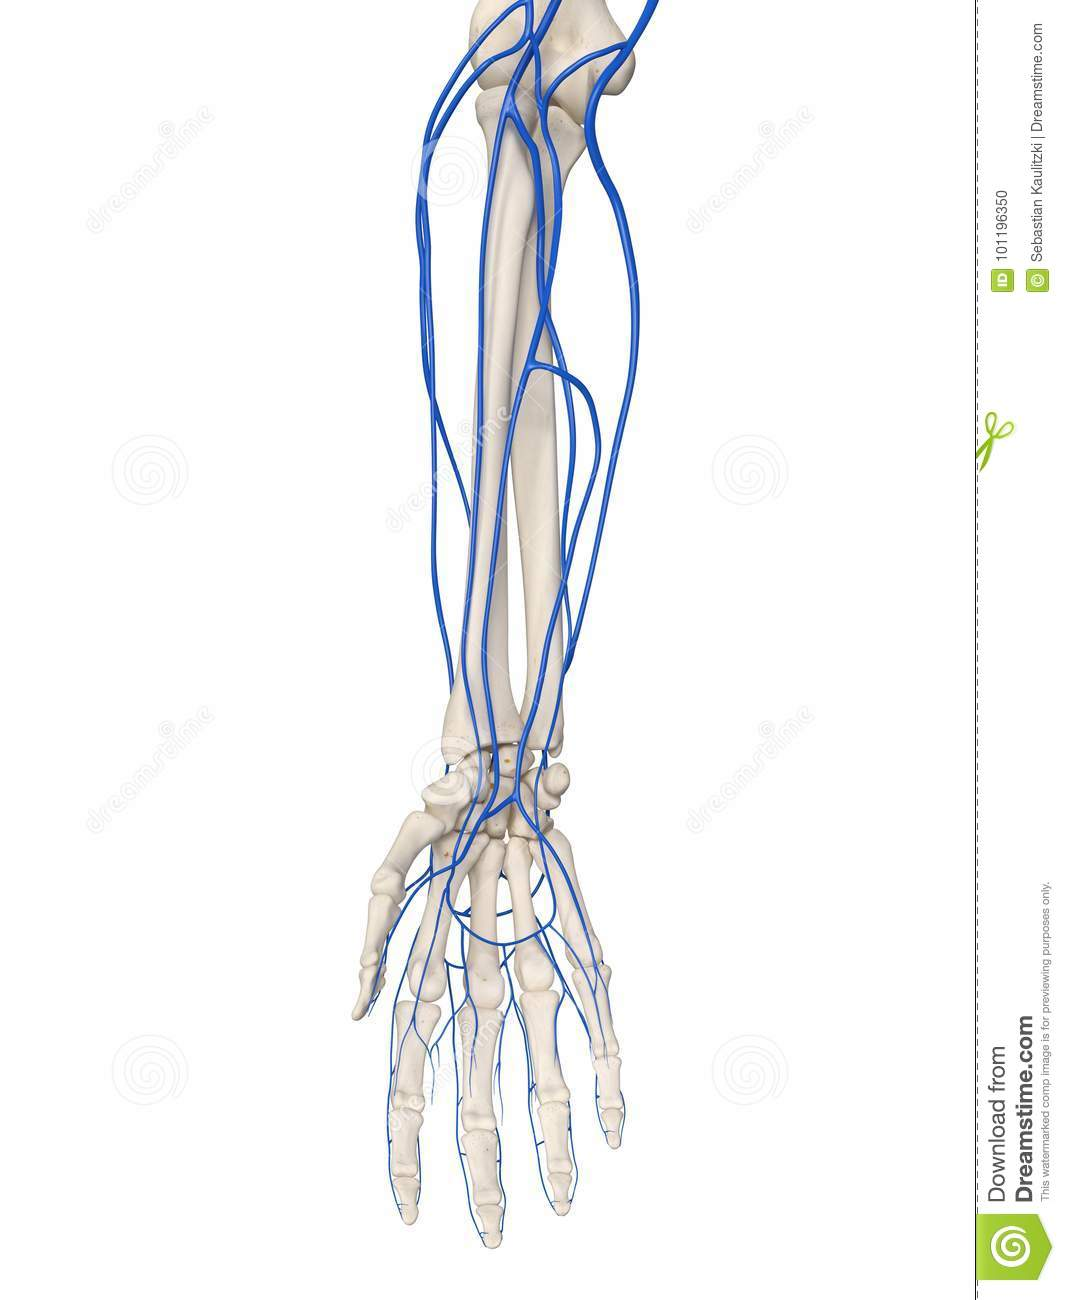 hight resolution of 3d rendered medically accurate illustration of the arm veins